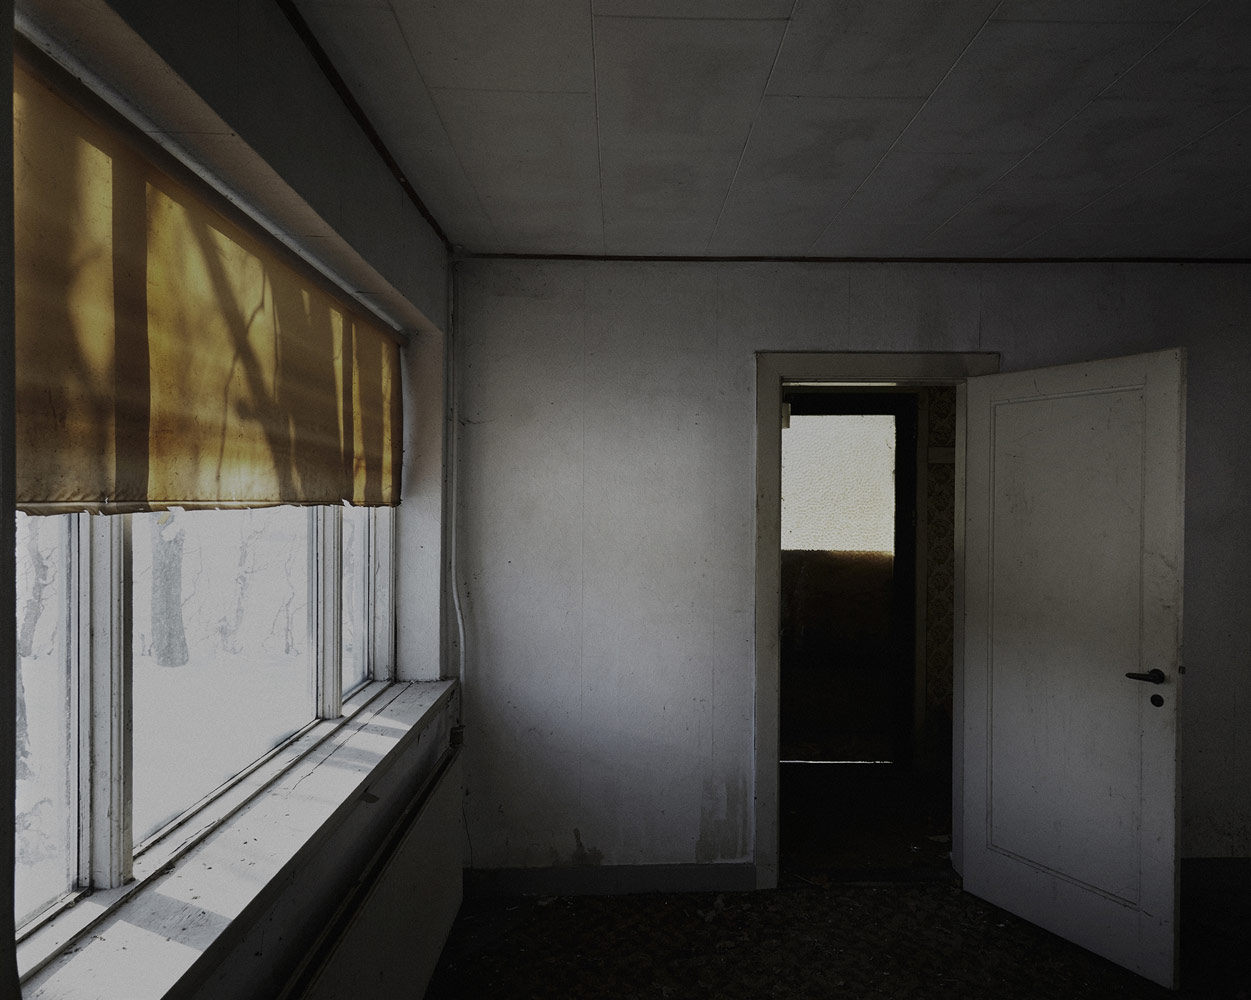 © Per Bix, Four o'clock of loneliness, Photography 19 x 24, The Chelsea International Photography Competition